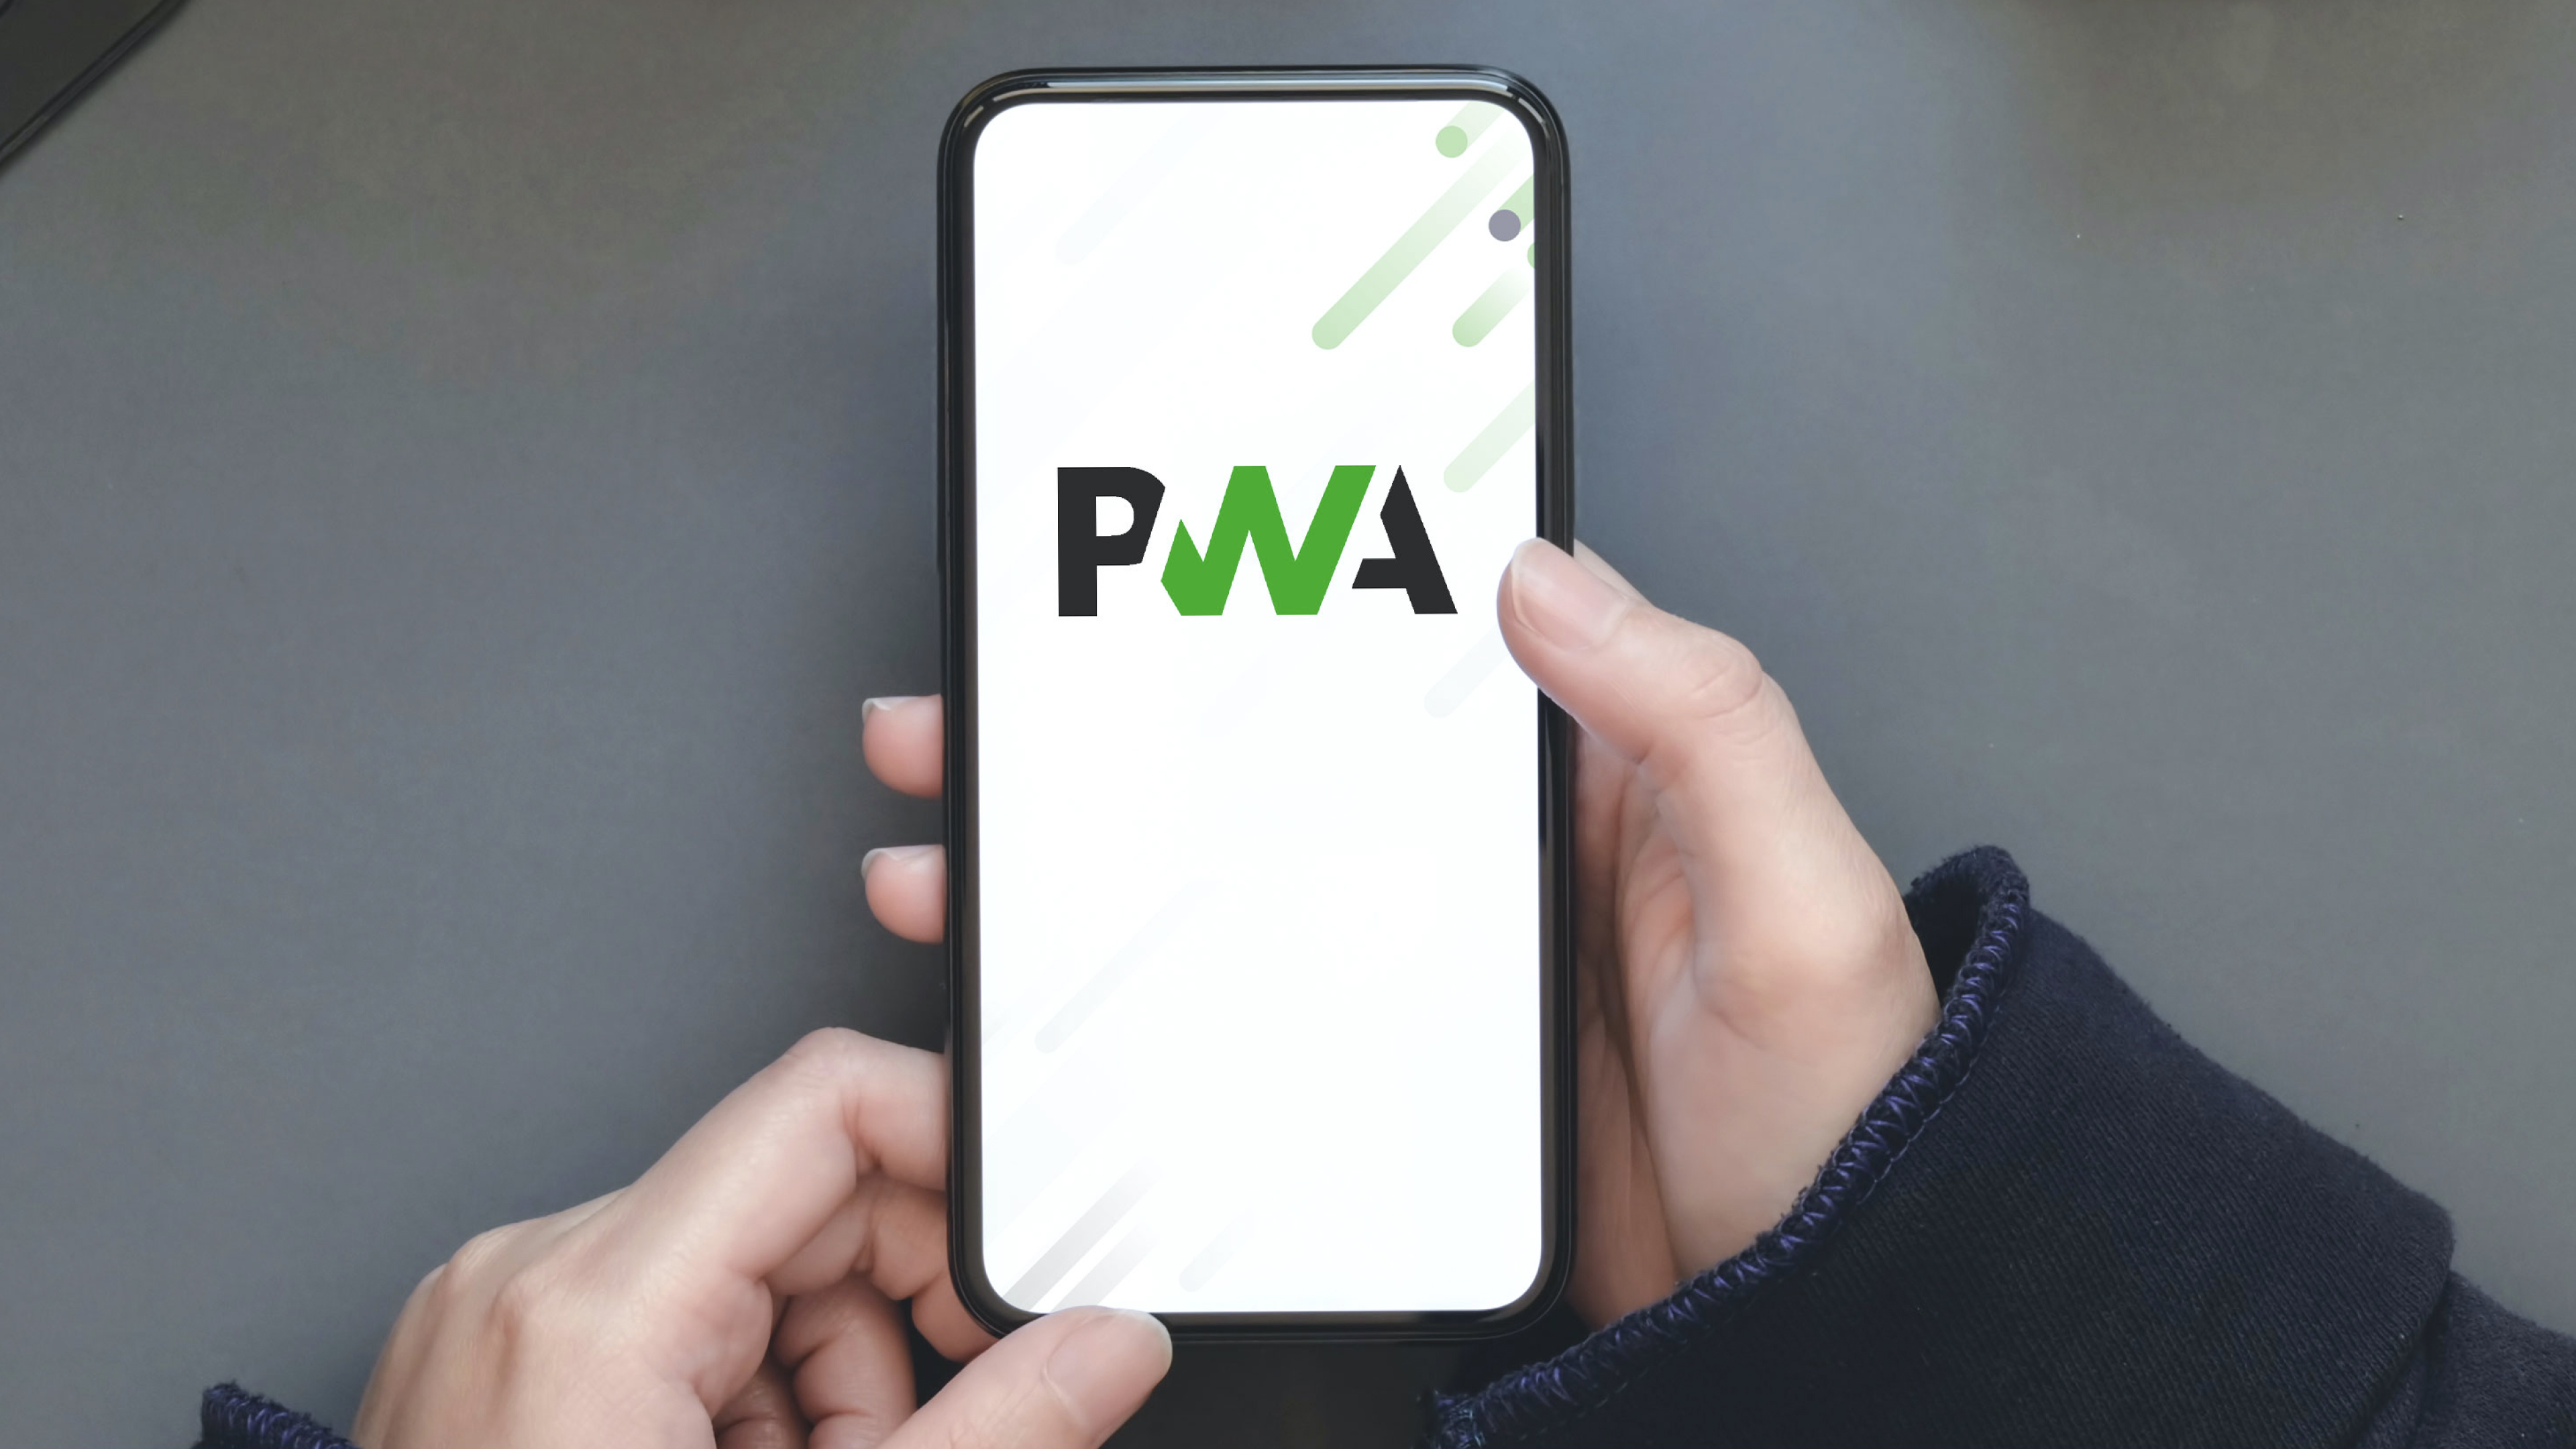 pwa benefits